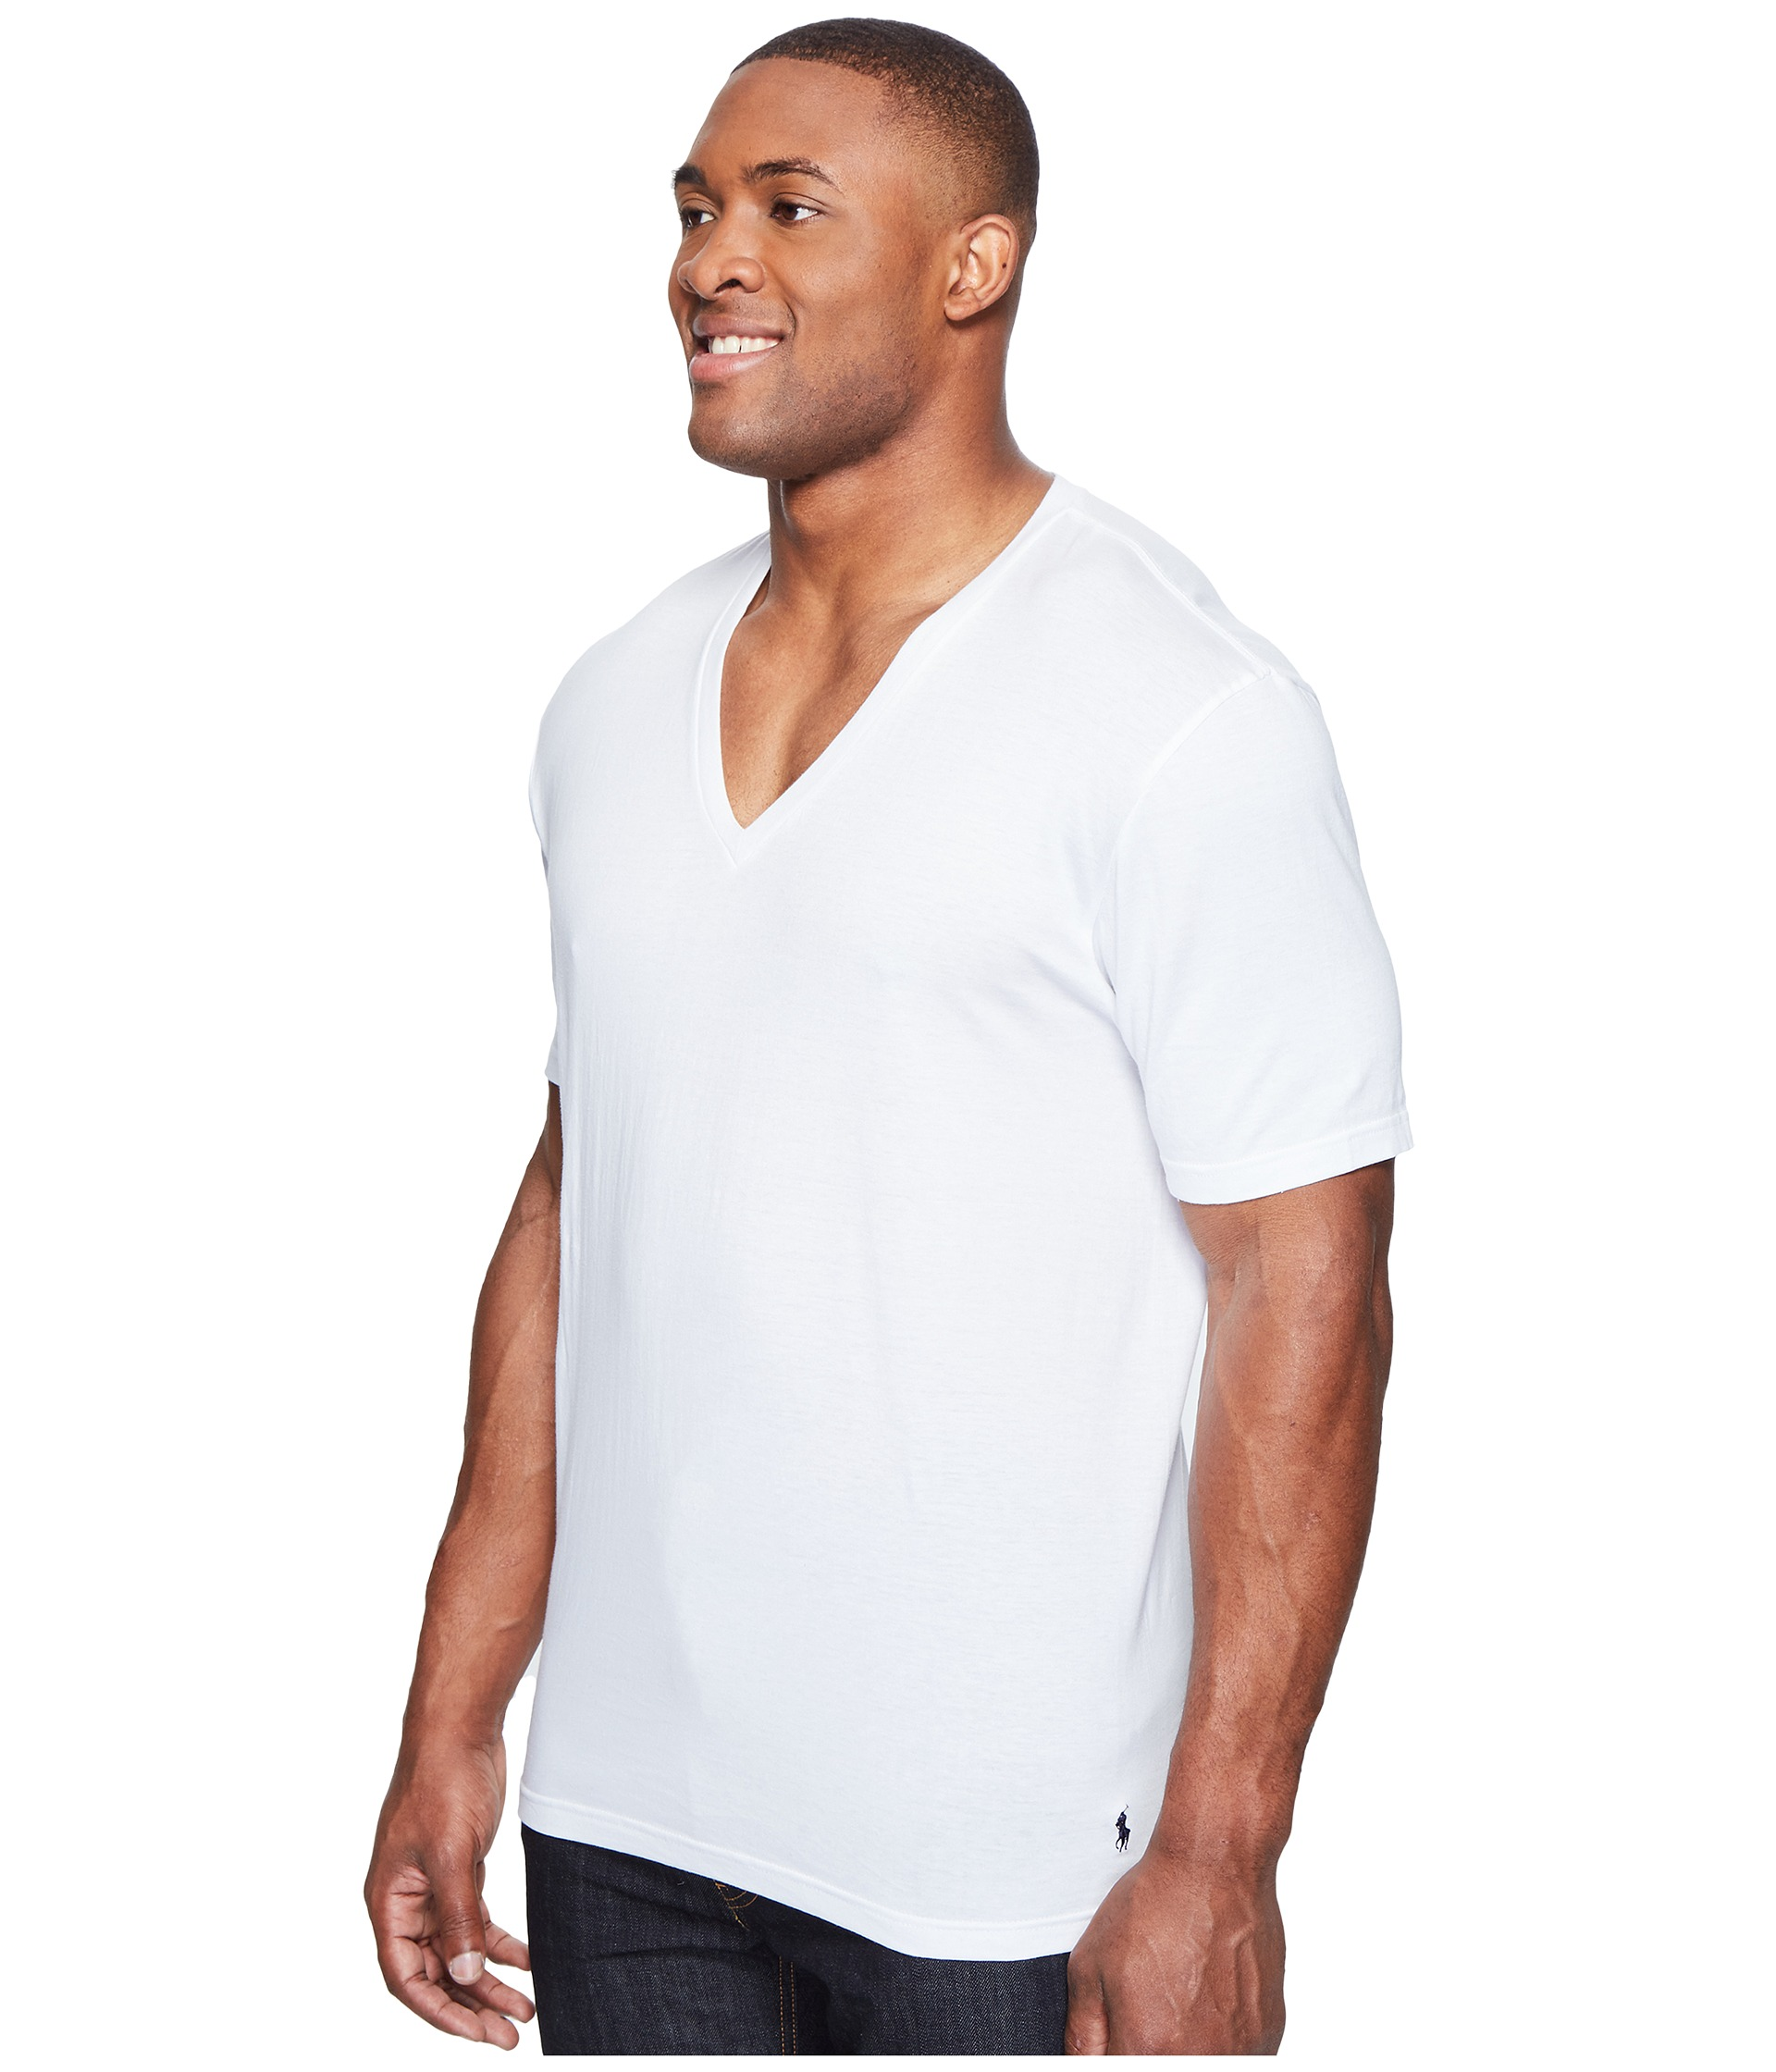 Polo ralph lauren 2 pack tall v neck t shirt at for Tall v neck t shirts